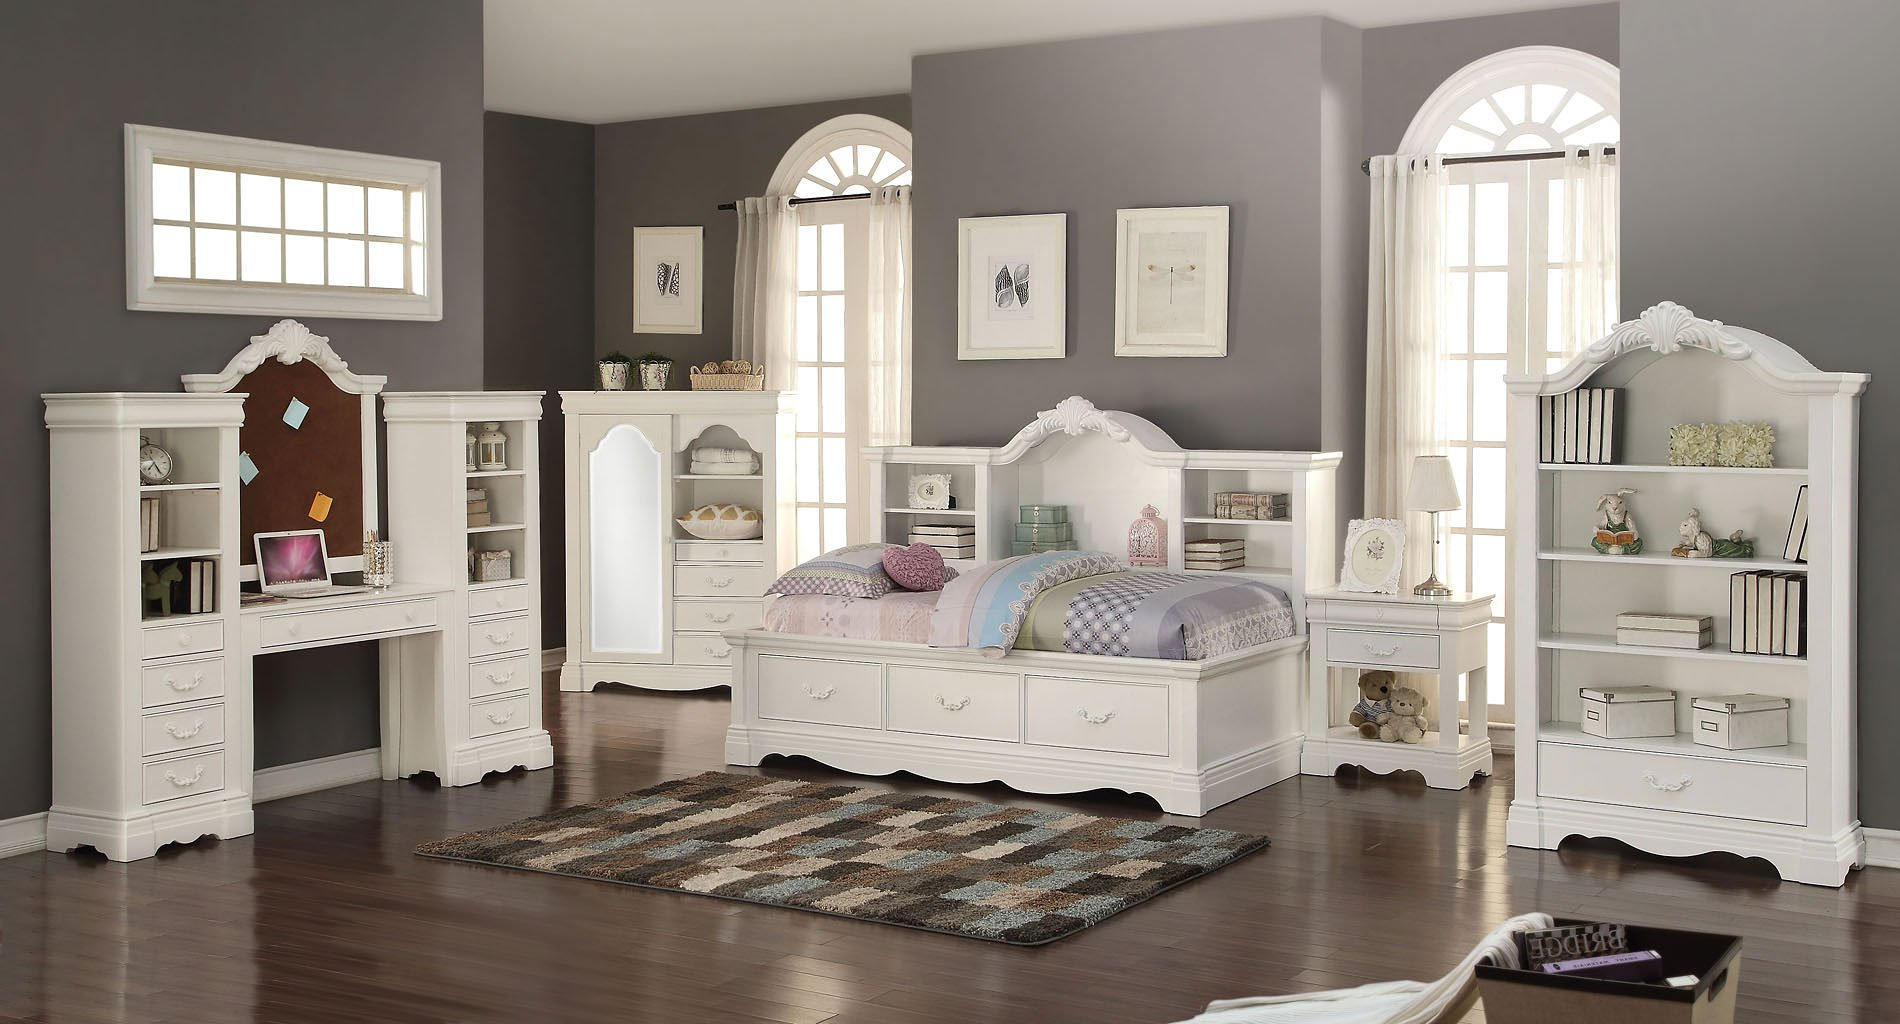 Estrella Storage Daybed Bedroom Set